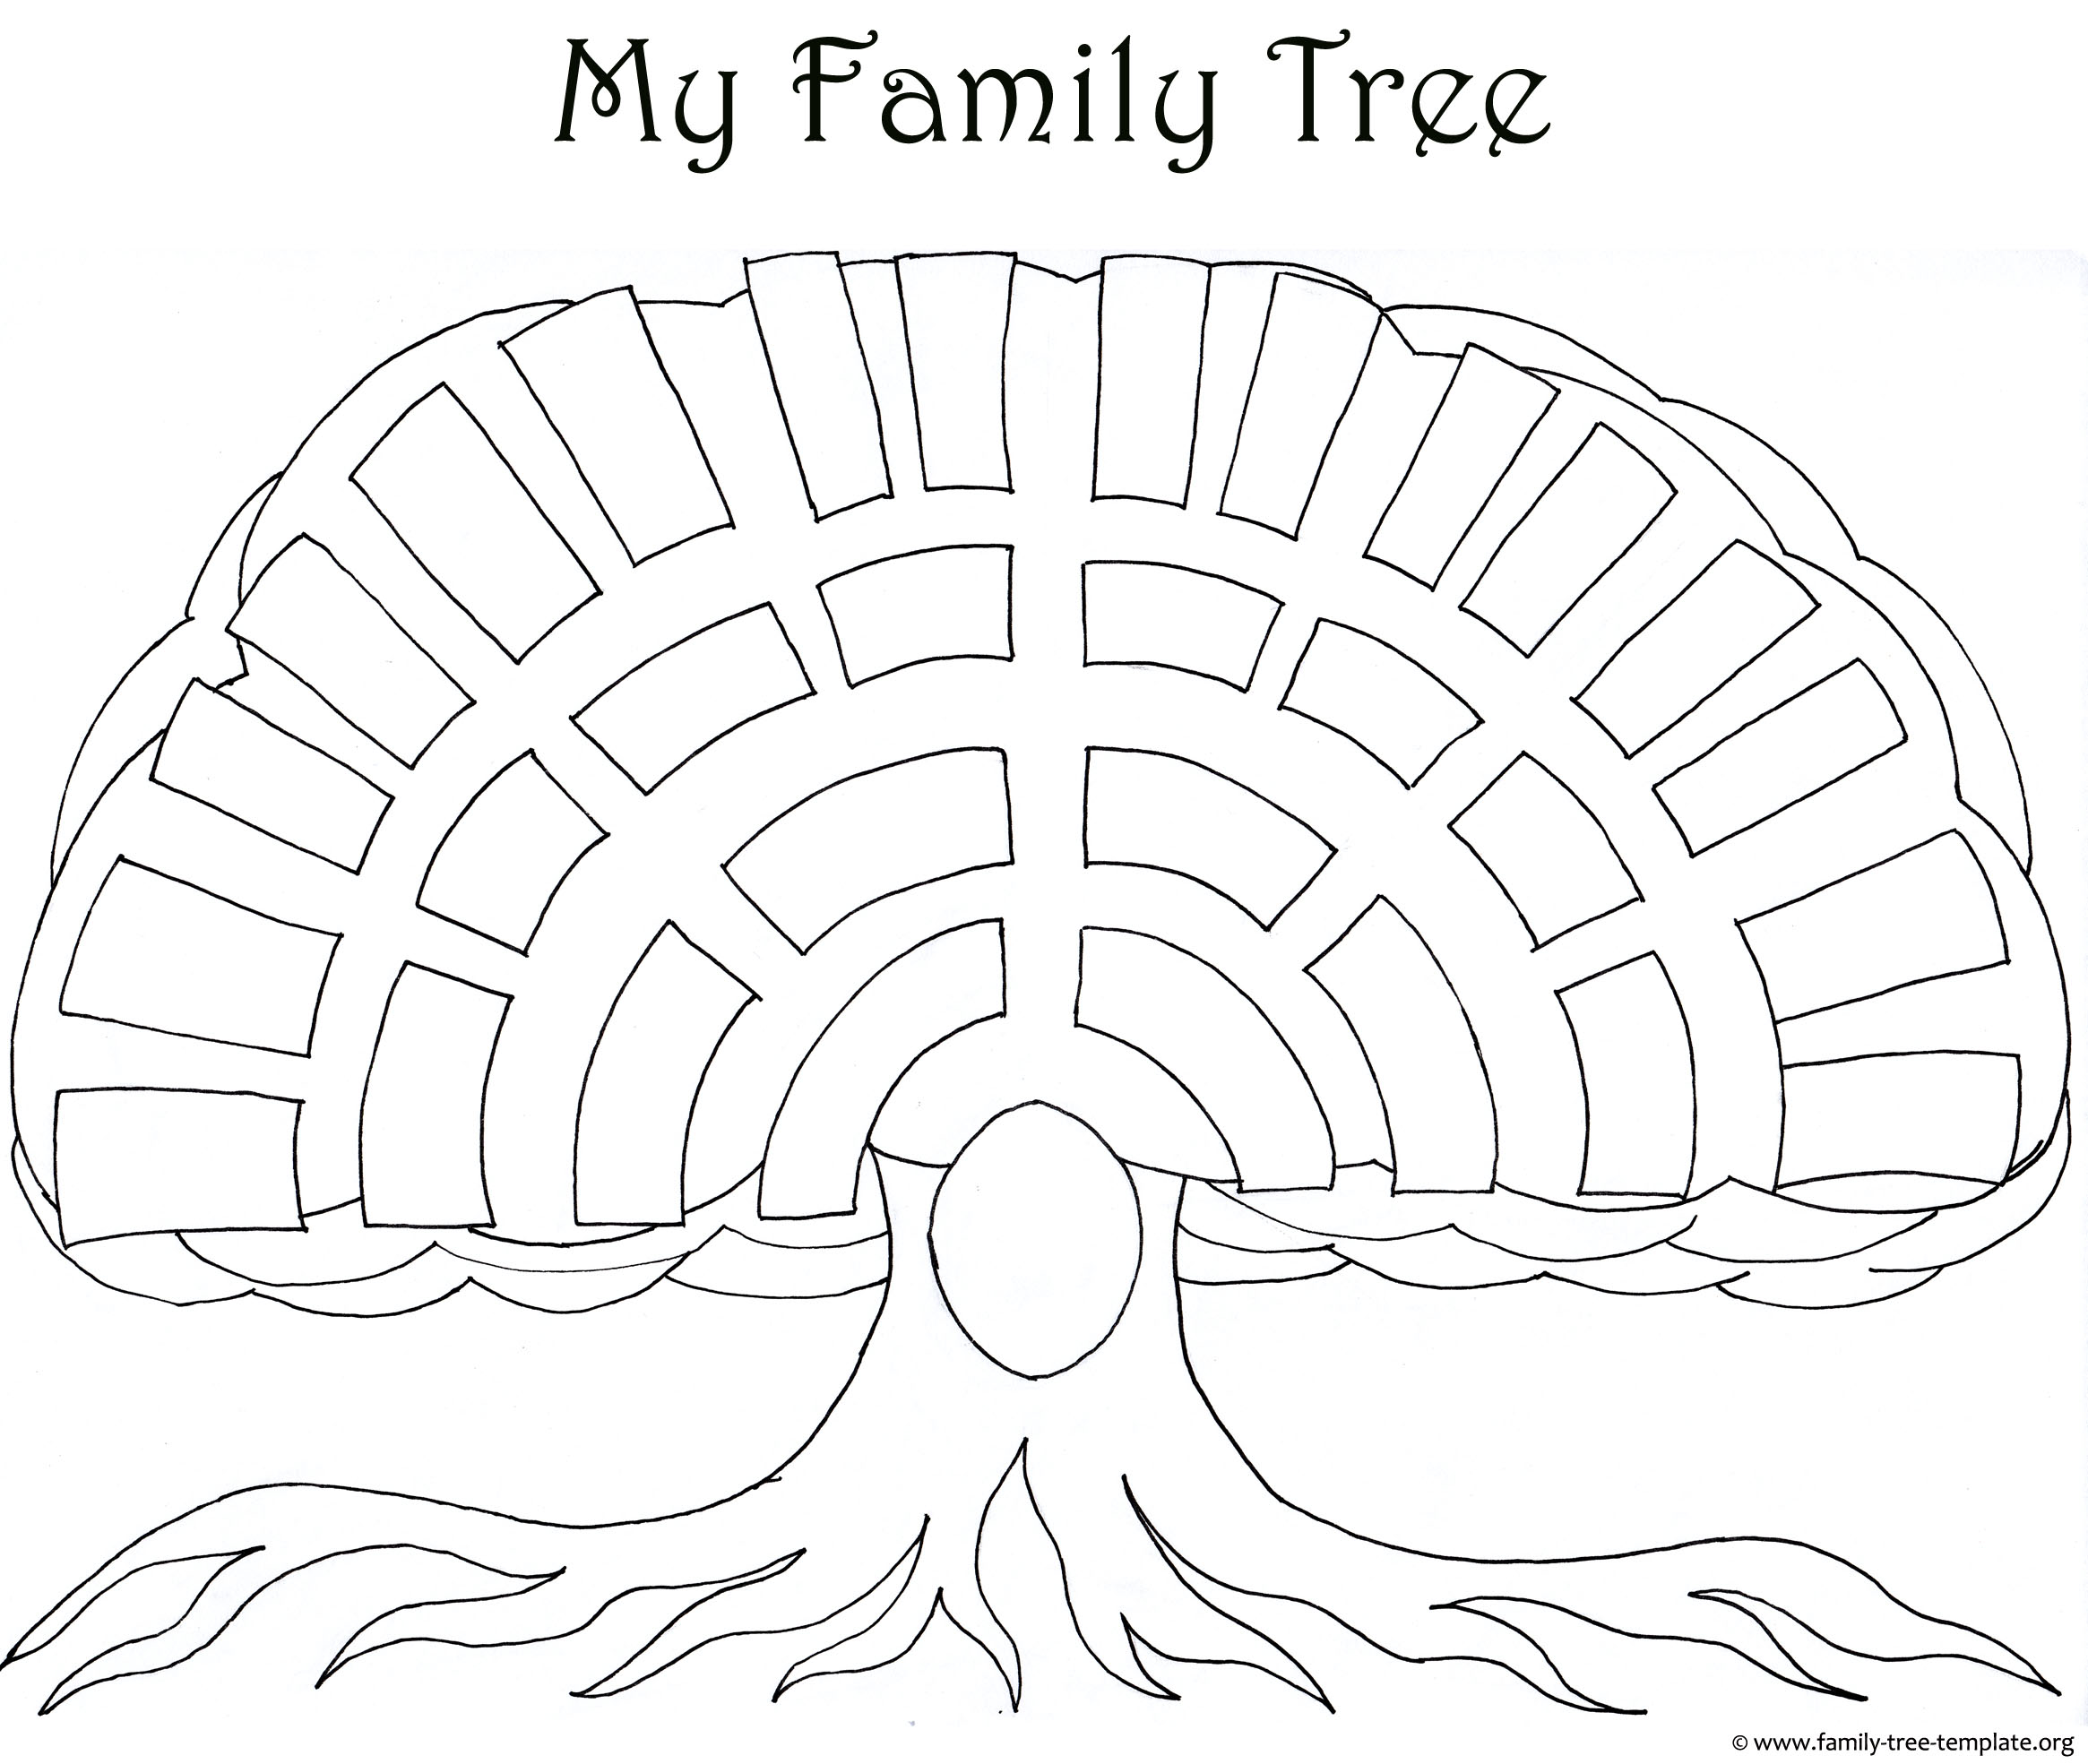 Big oak family tree template as a coloring page for kids and their parents.